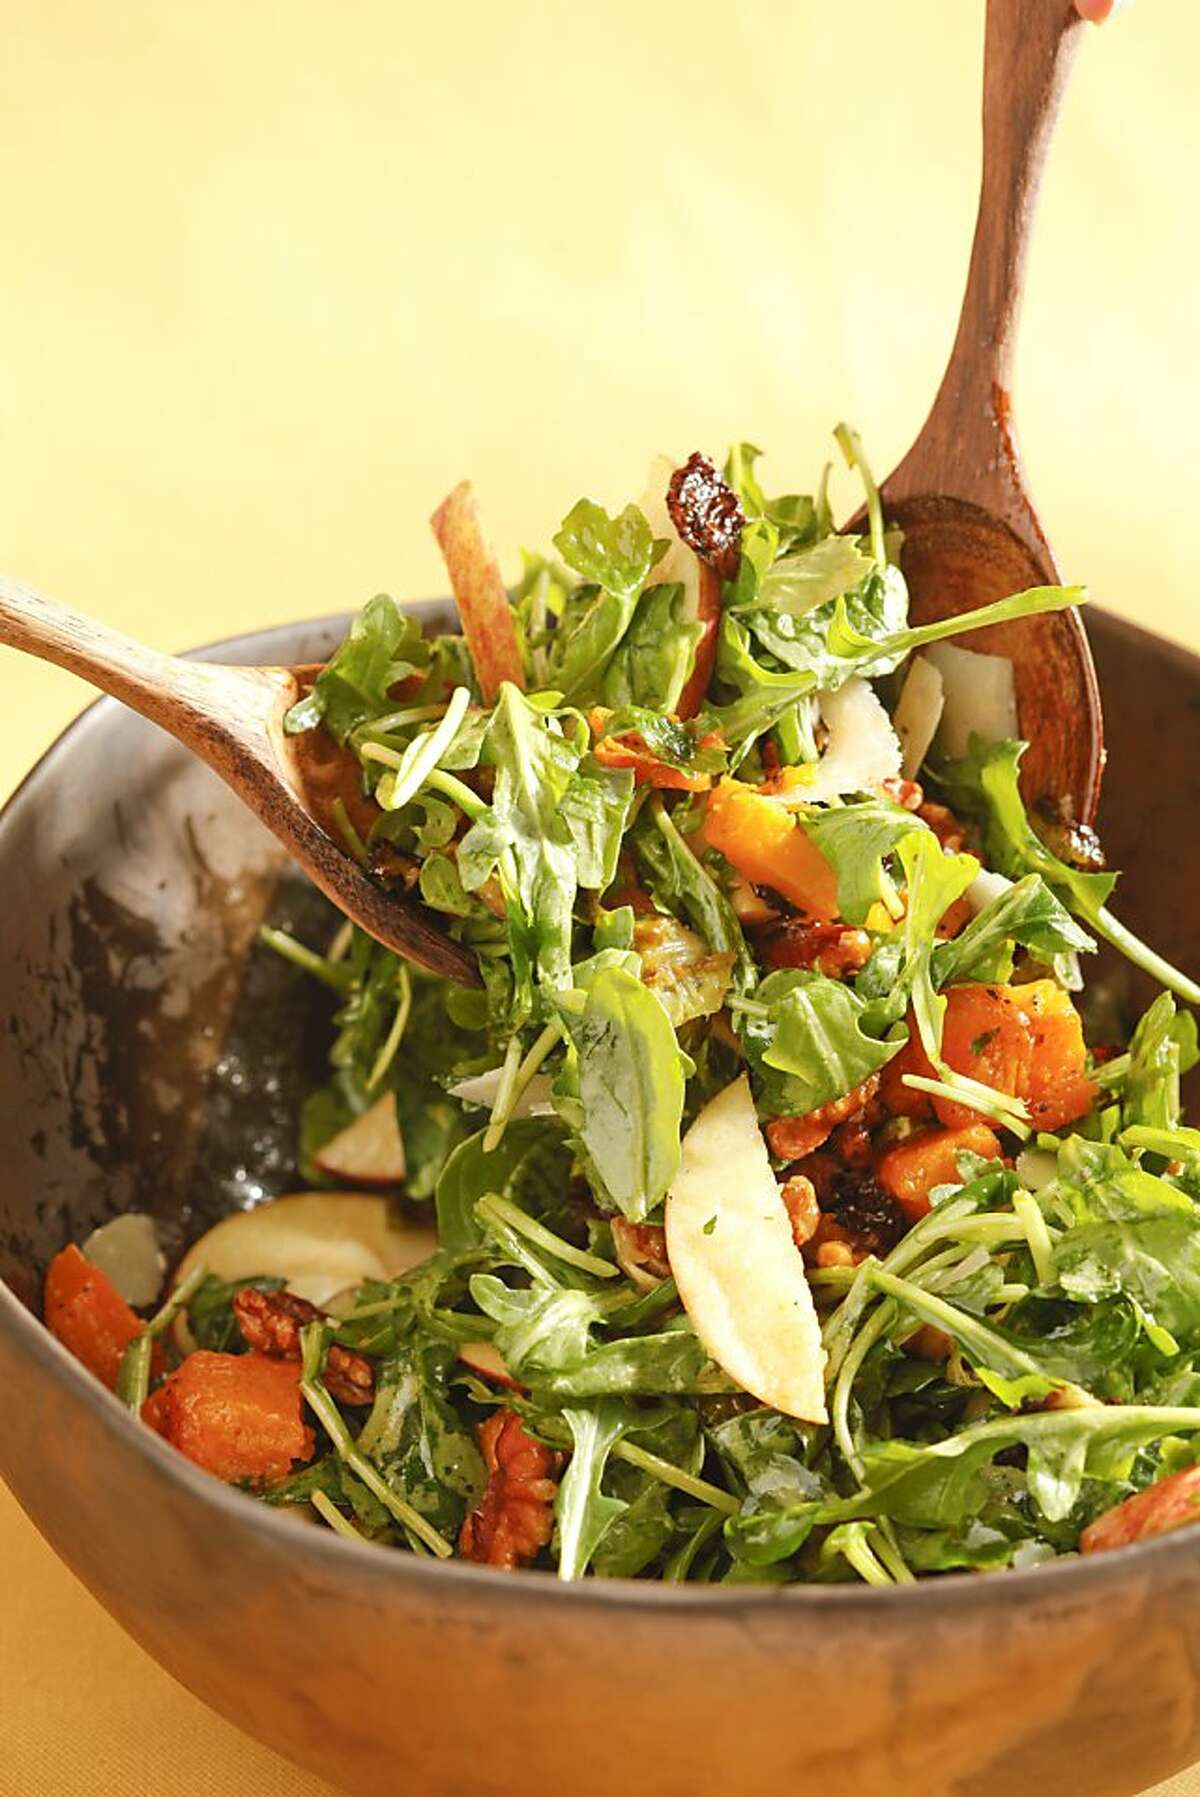 Roasted butternut squash, russels sprouts, arugula salad as seen in San Francisco, California, on October 30, 2013. Food styled by Amanda Gold.